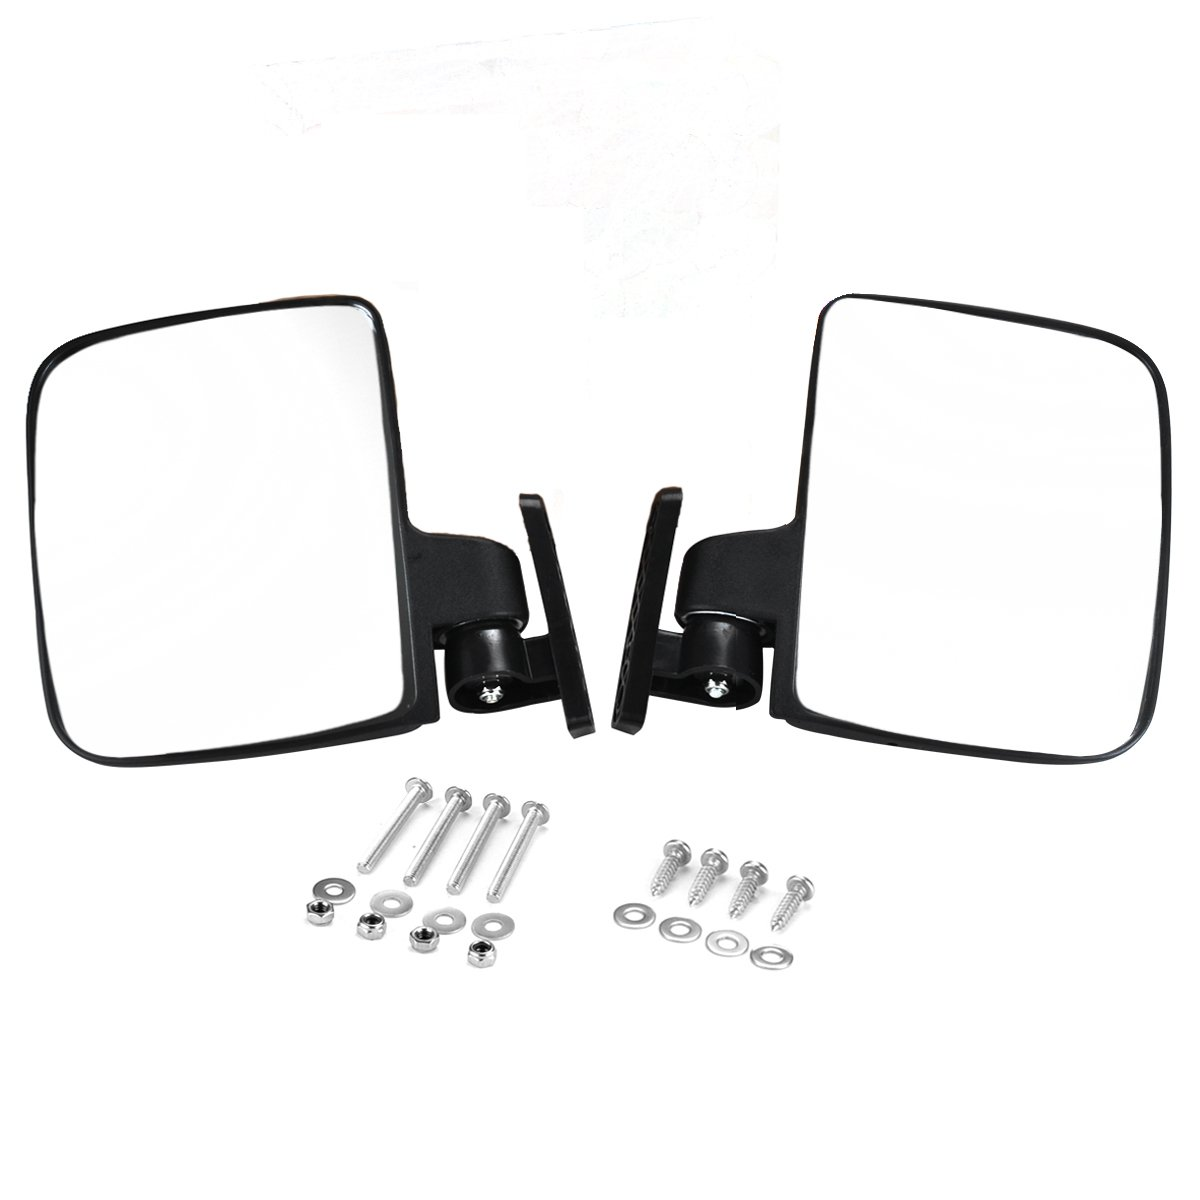 Valchoose Golf Cart Side Mirrors for EZGO Club Car Yamaha, Foldable Golf Cart Accessories